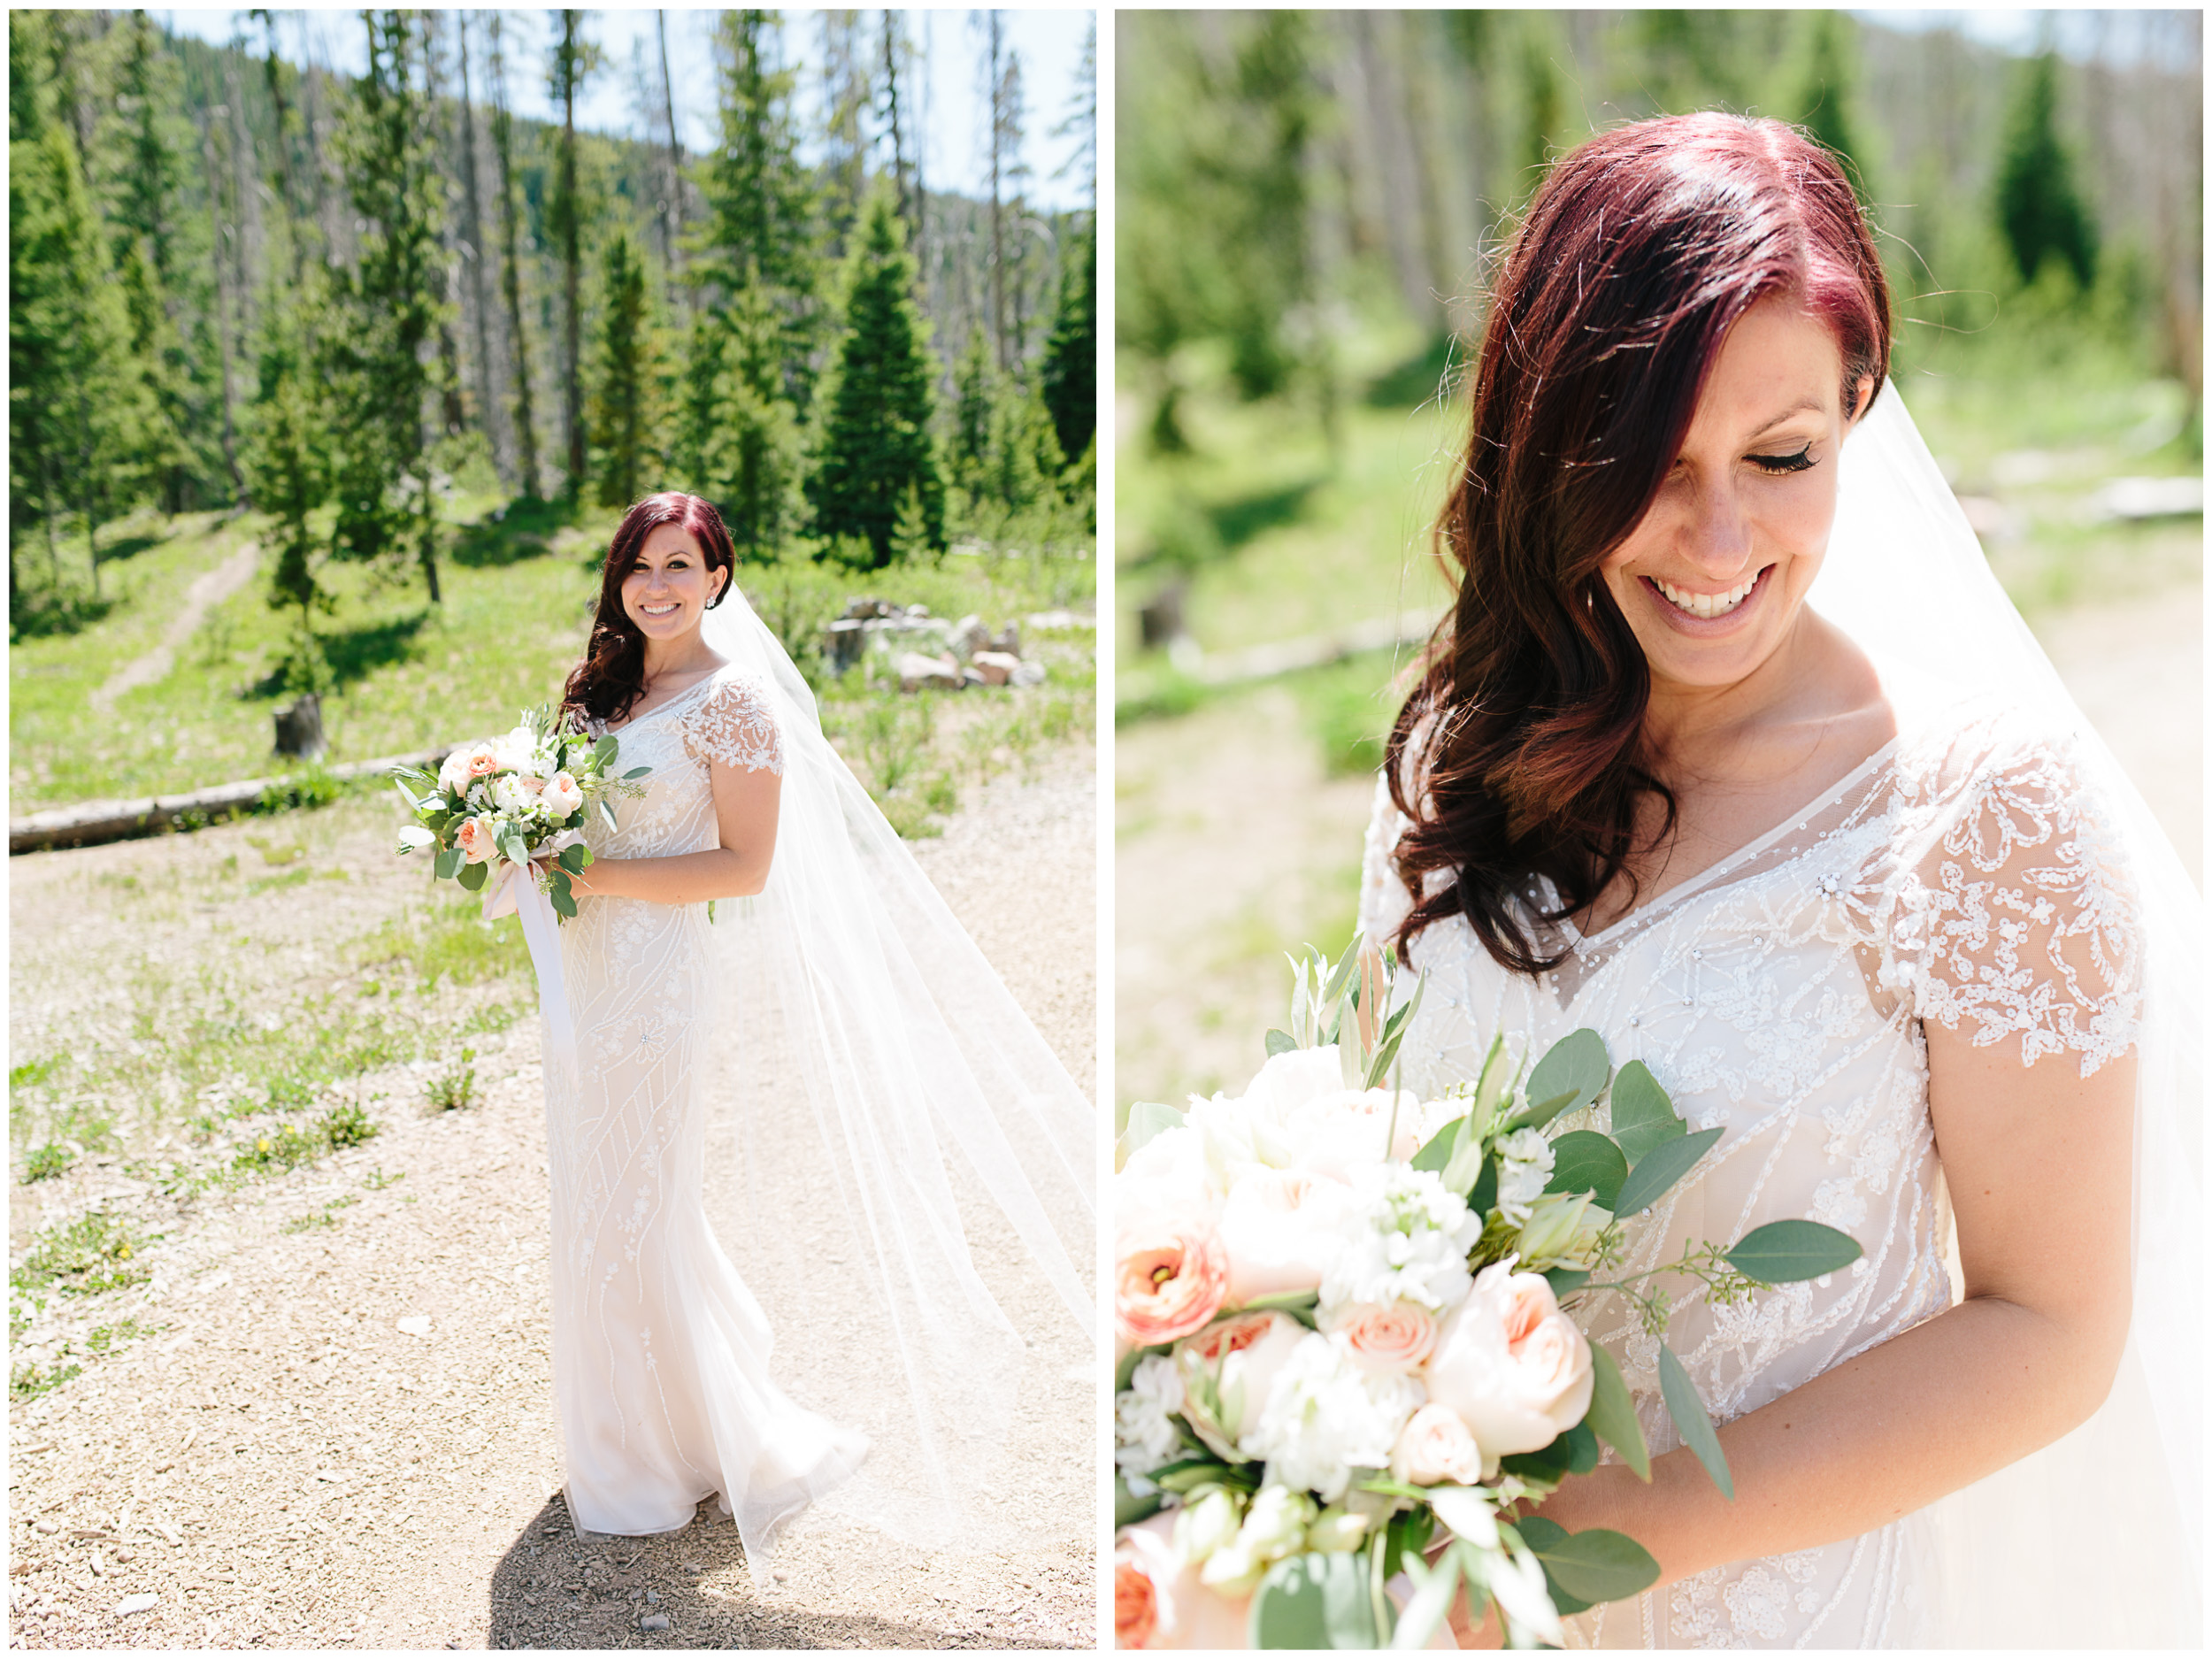 rocky_mountain_wedding_19a.jpg